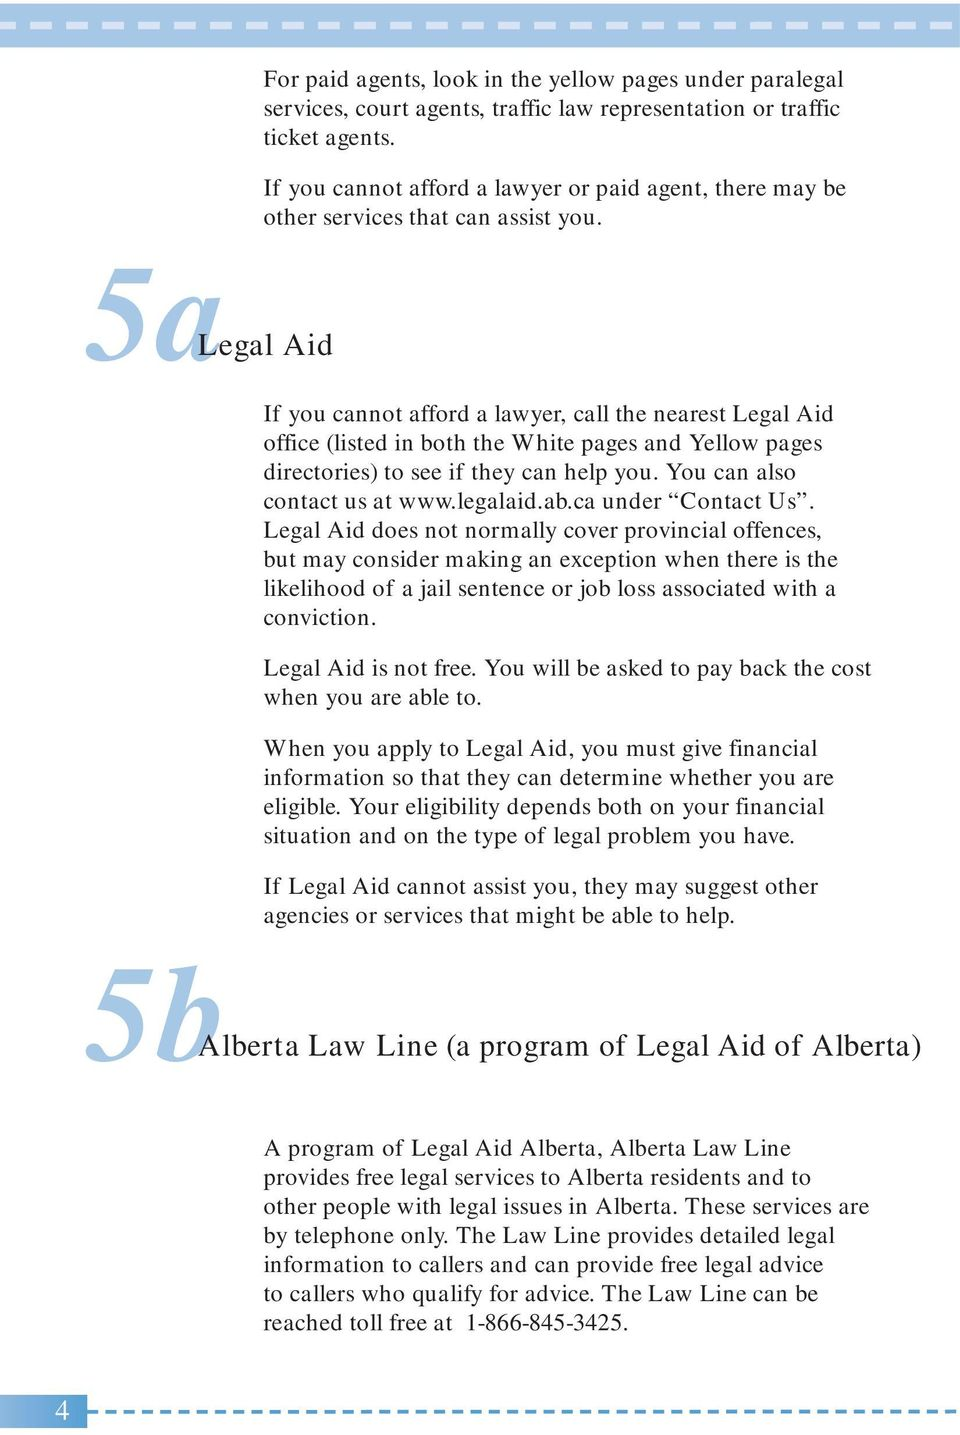 5aLegal Aid If you cannot afford a lawyer, call the nearest Legal Aid office (listed in both the White pages and Yellow pages directories) to see if they can help you. You can also contact us at www.